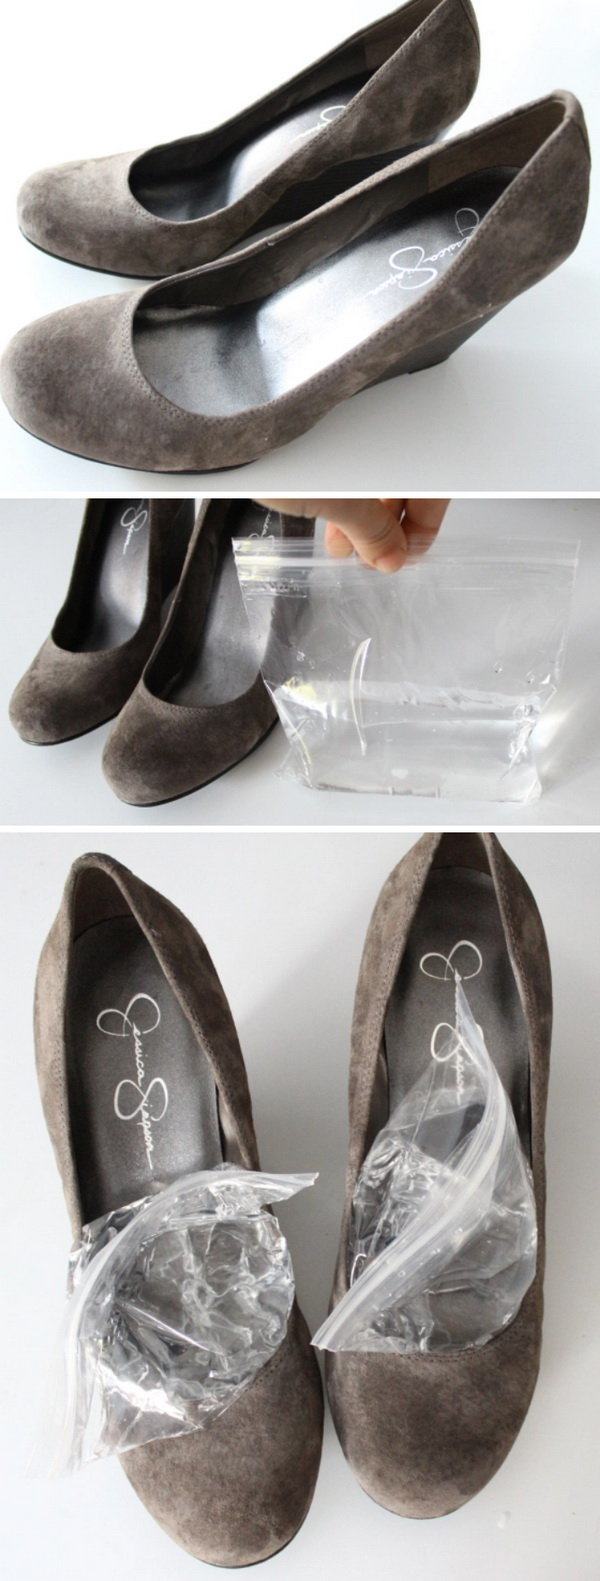 Stretch Your Shoes in the Freezer.